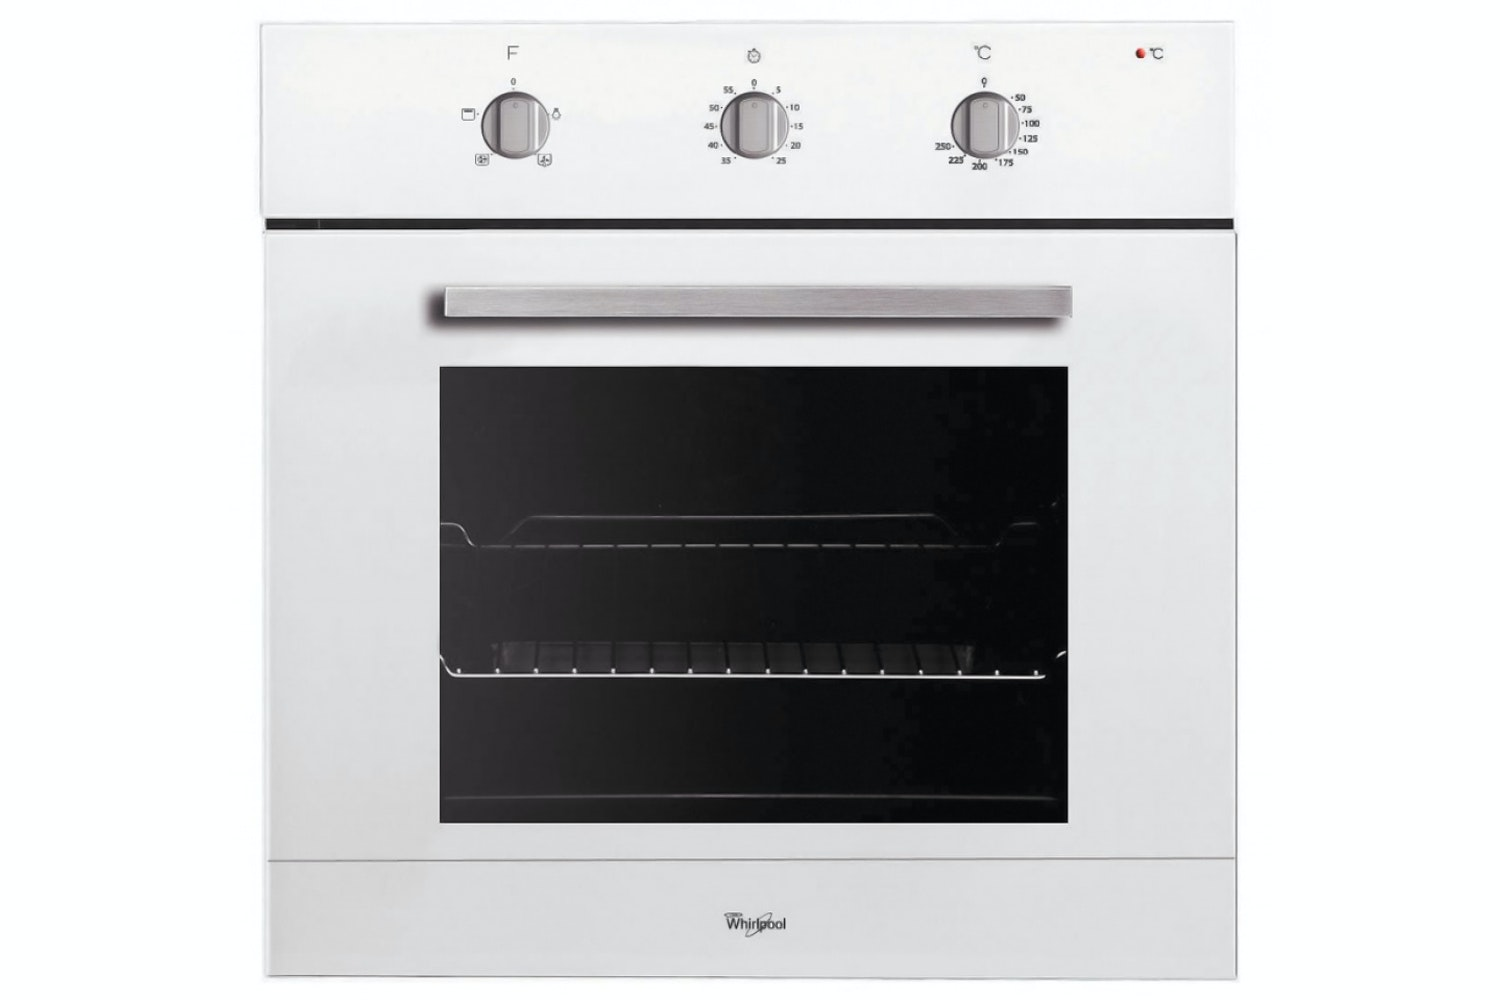 Whirlpool Built In Electric Single Oven   AKP436/WH